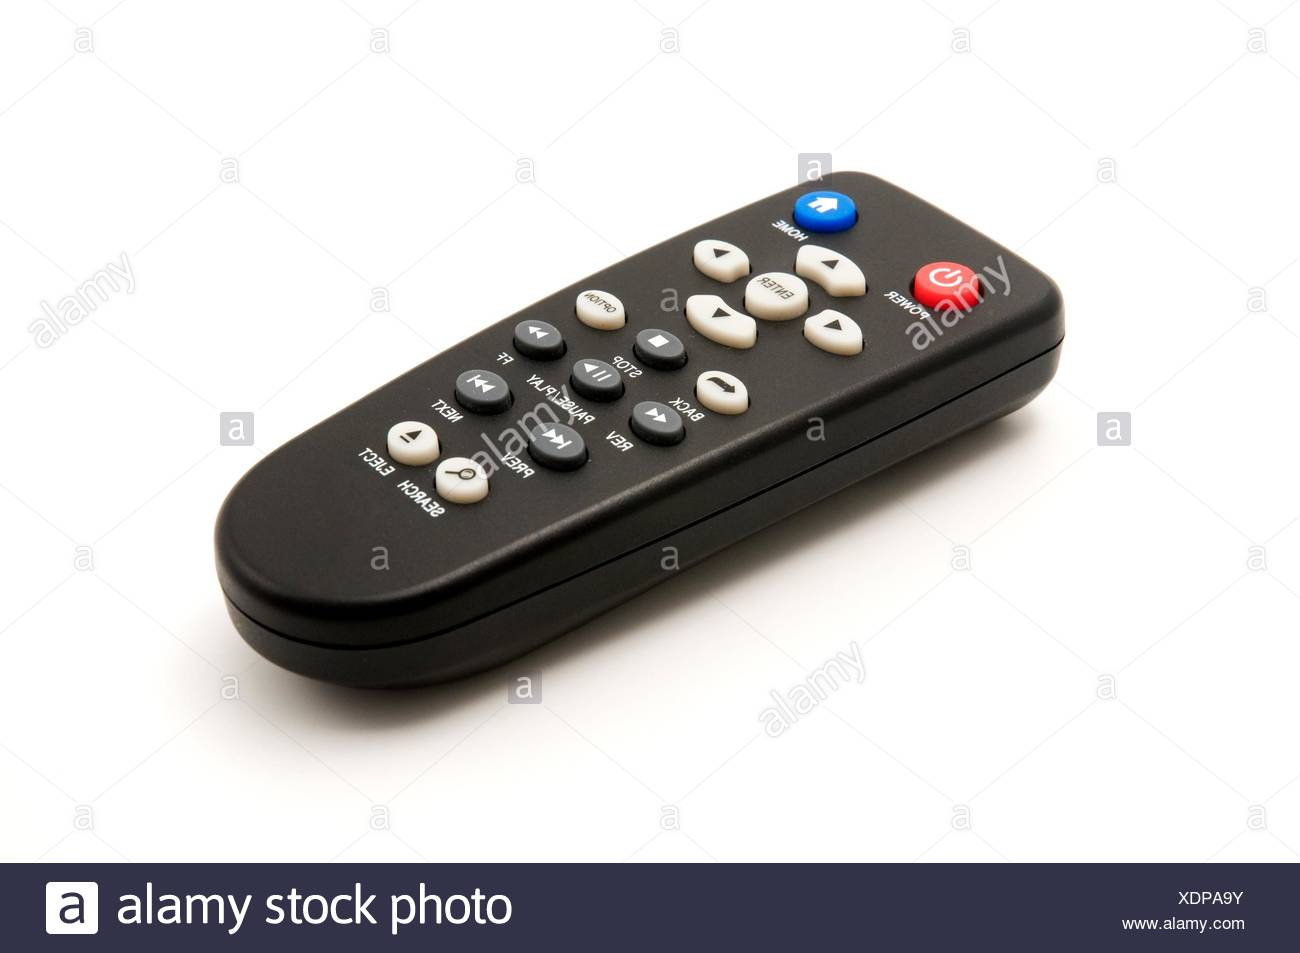 Multimedia Remote Control on a white background - Stock Image